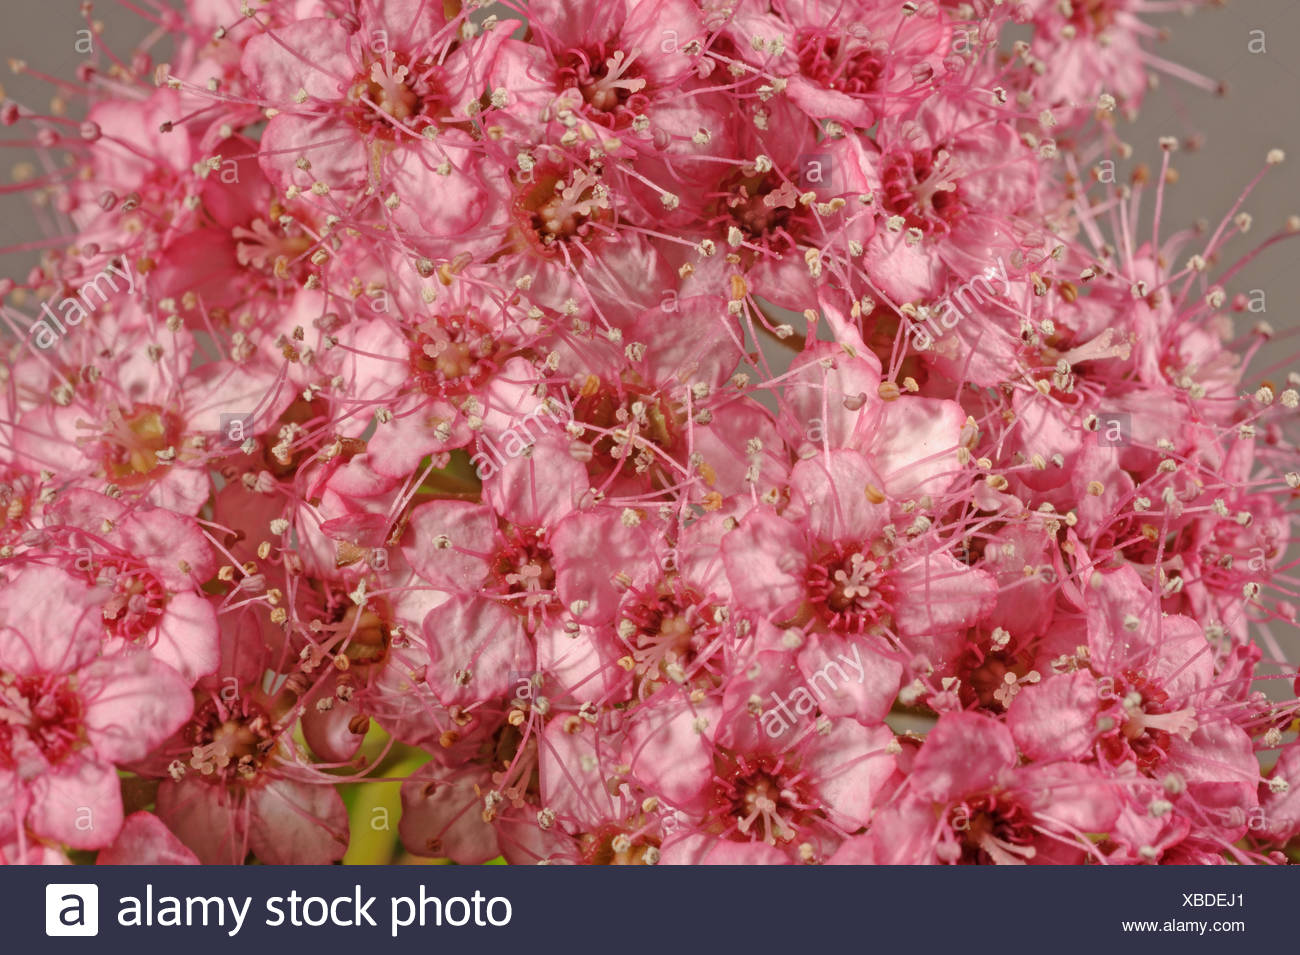 Spiraea Stock Photos Spiraea Stock Images Alamy